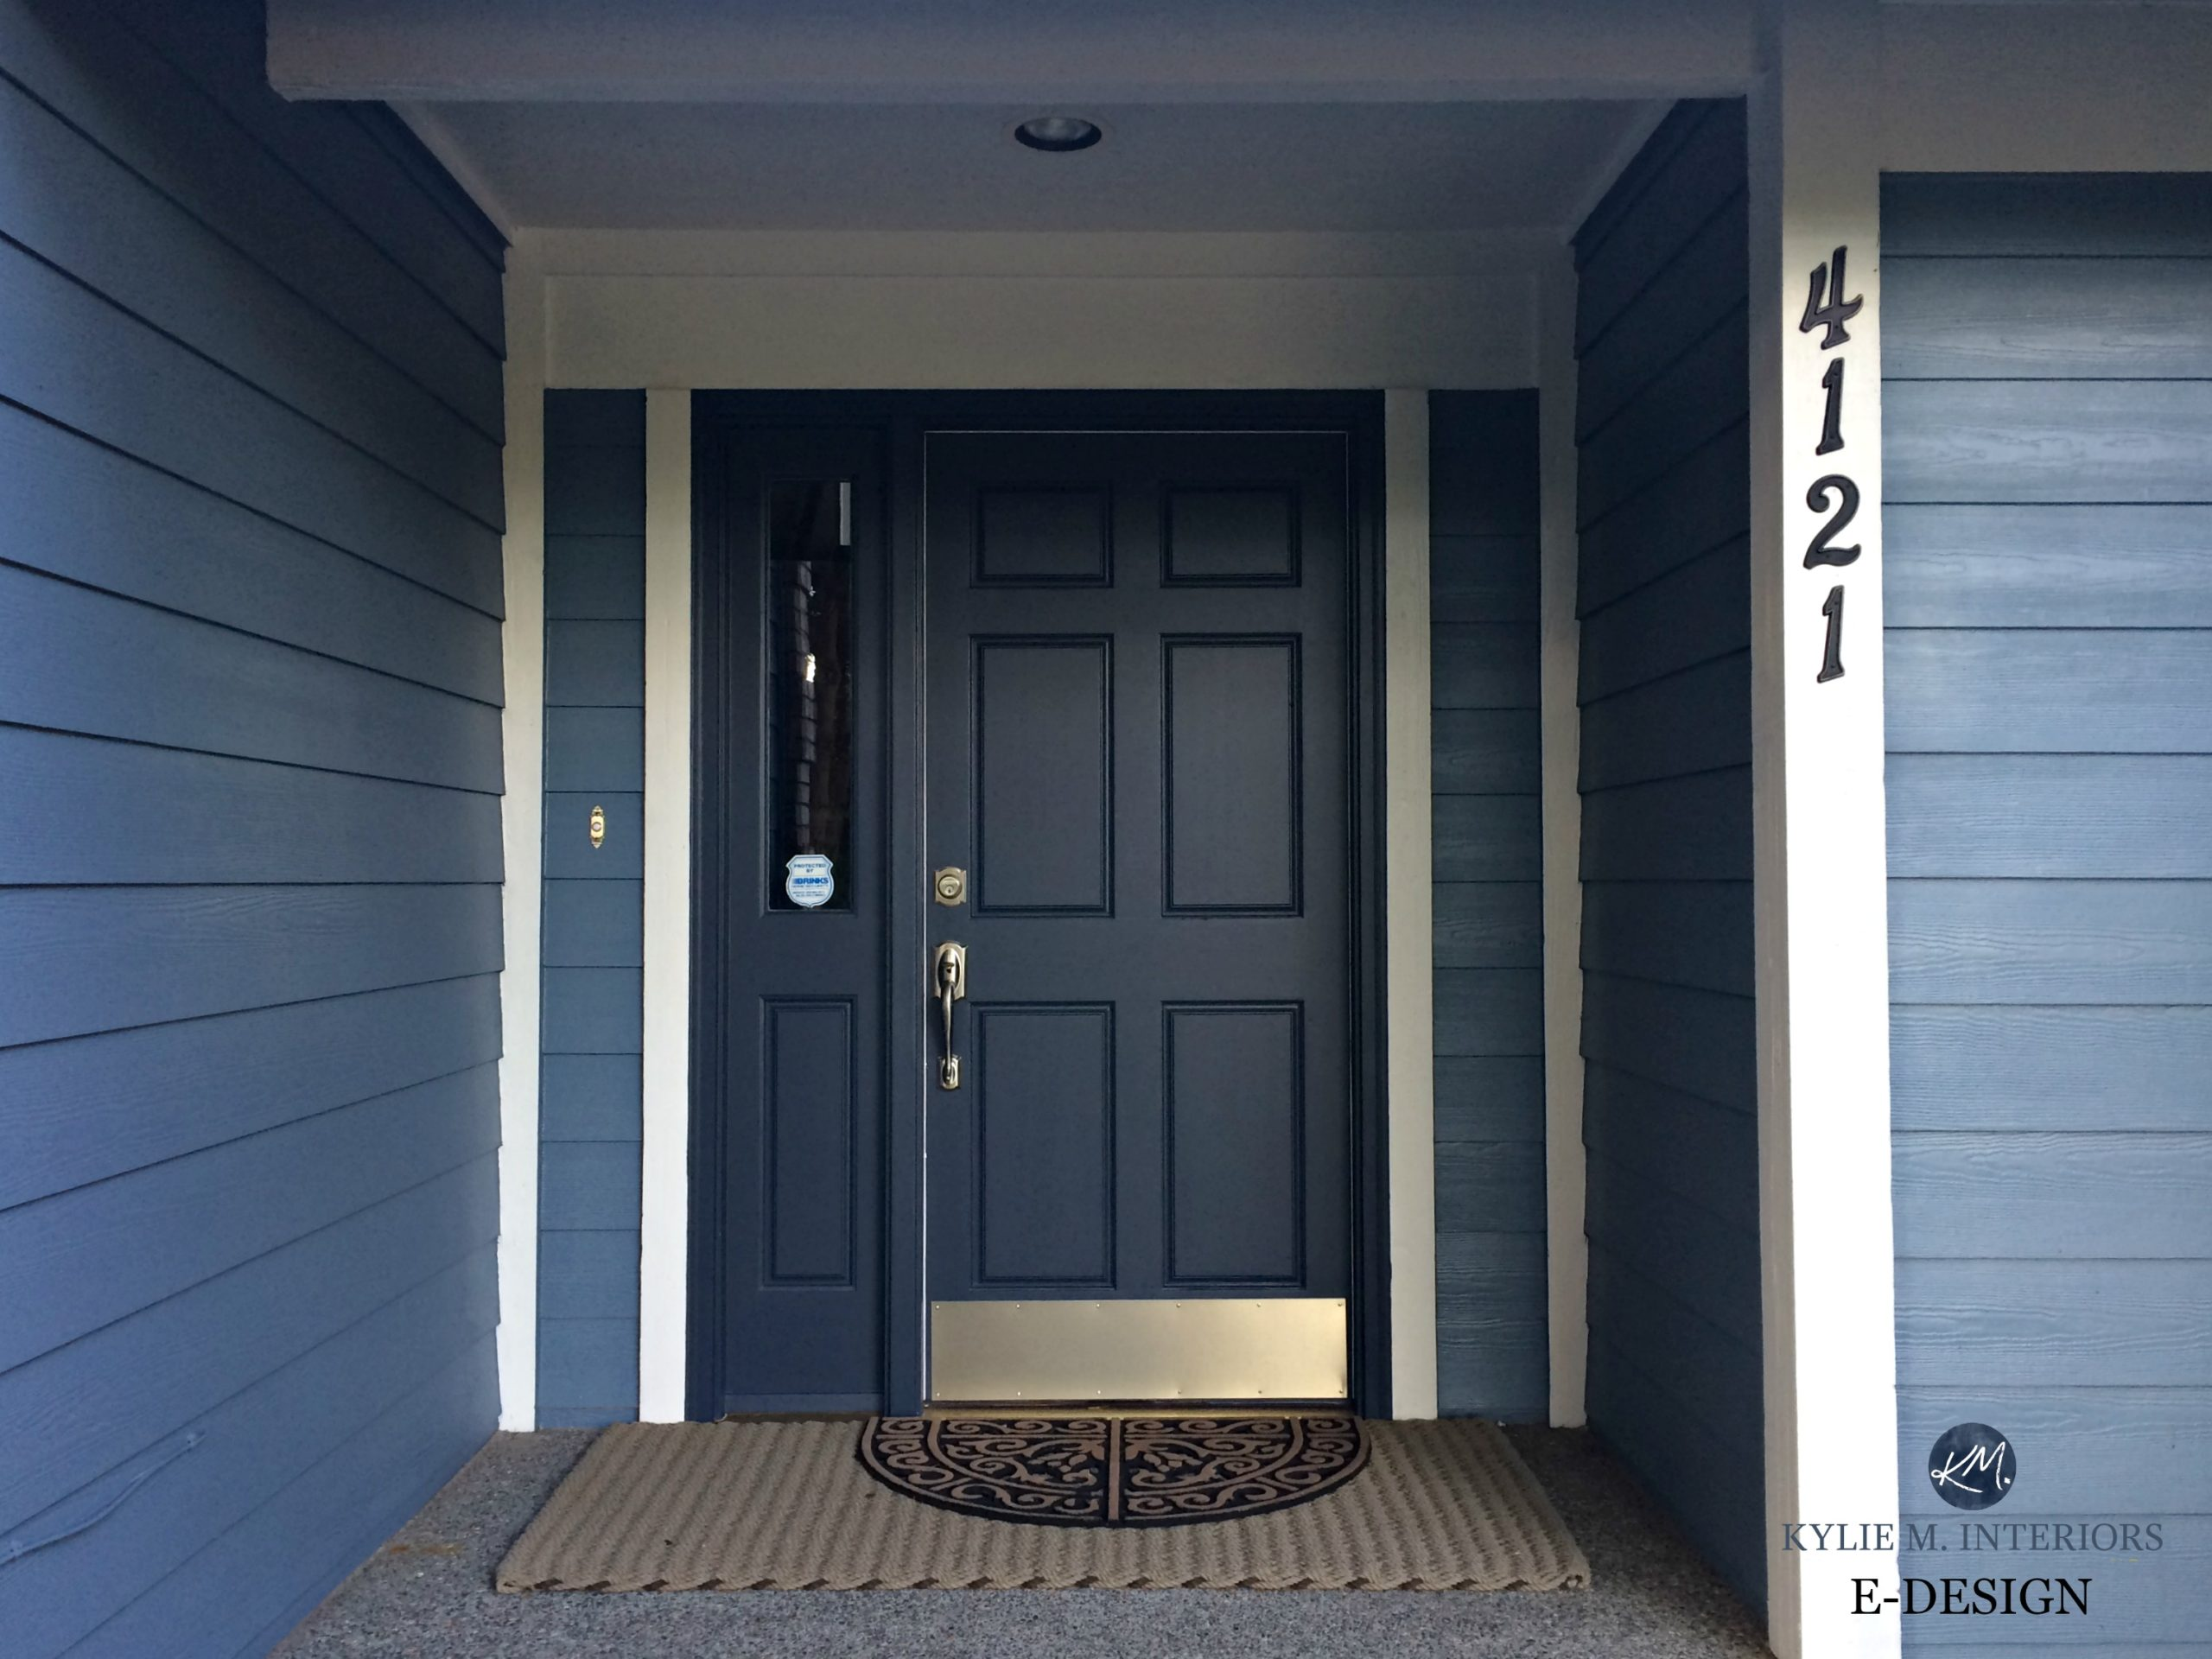 Genial Front Door Painted Benjamin Moore Hale Navy, Blue Siding And White Trim.  Best Paint Colour. Kylie M E Design